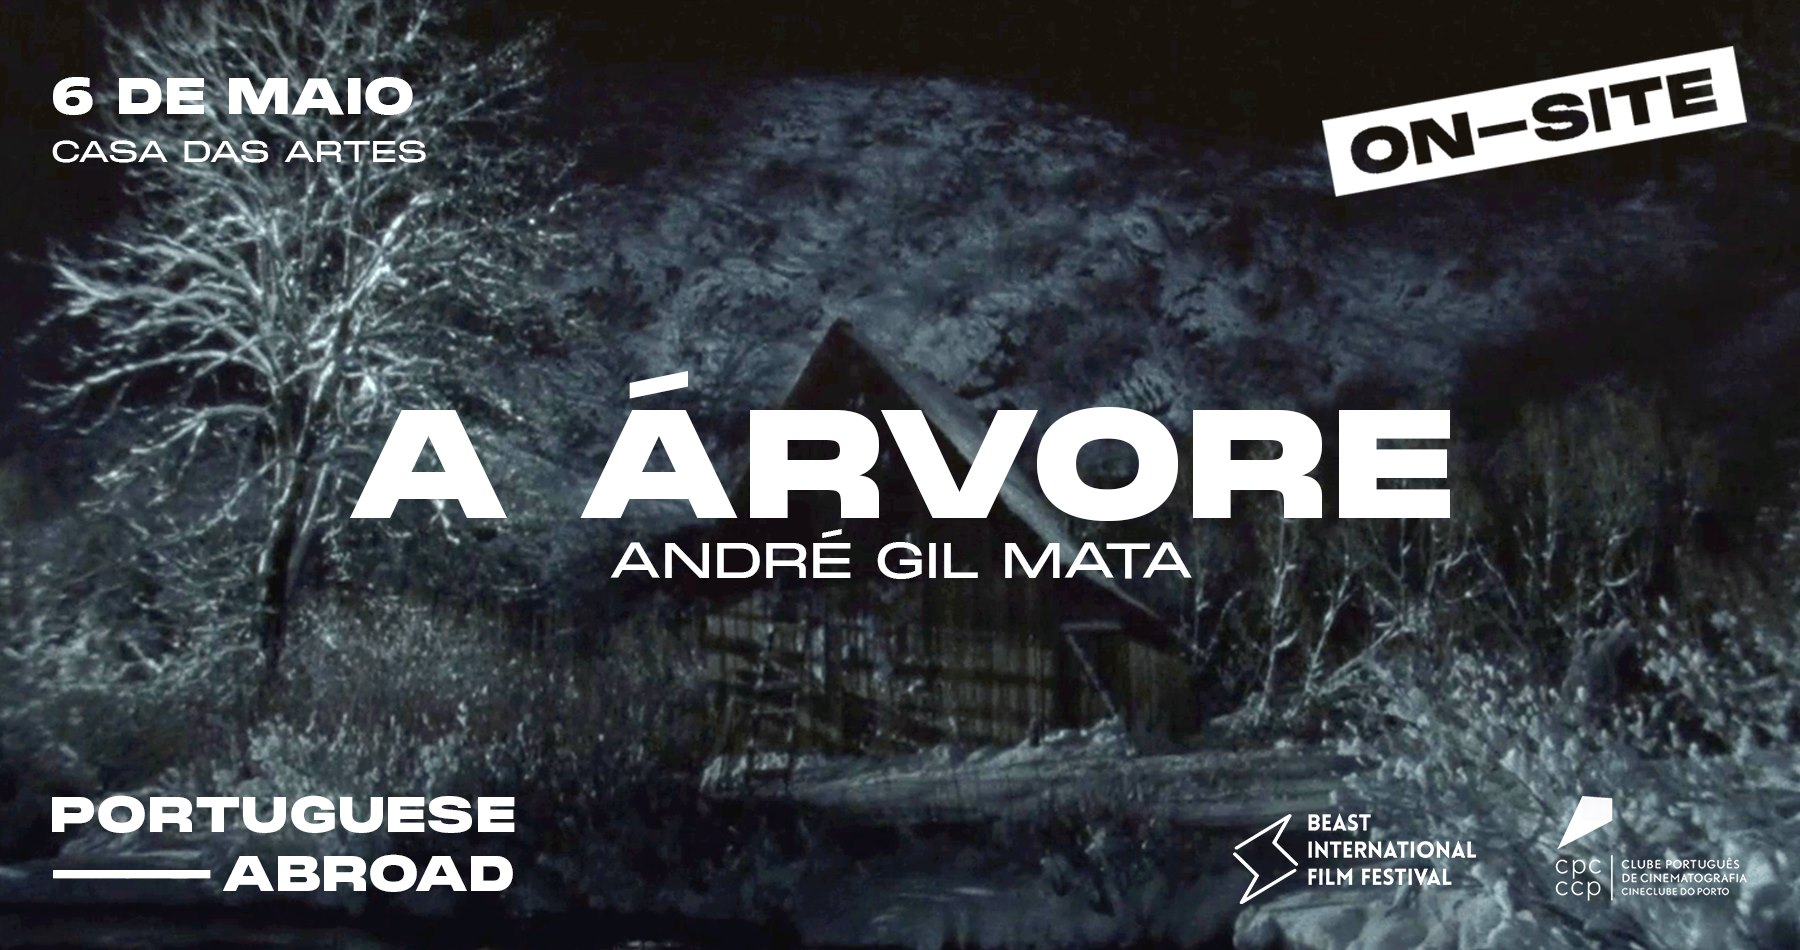 BEAST IFF ON-SITE #5   Portuguese Abroad com André Gil Mata